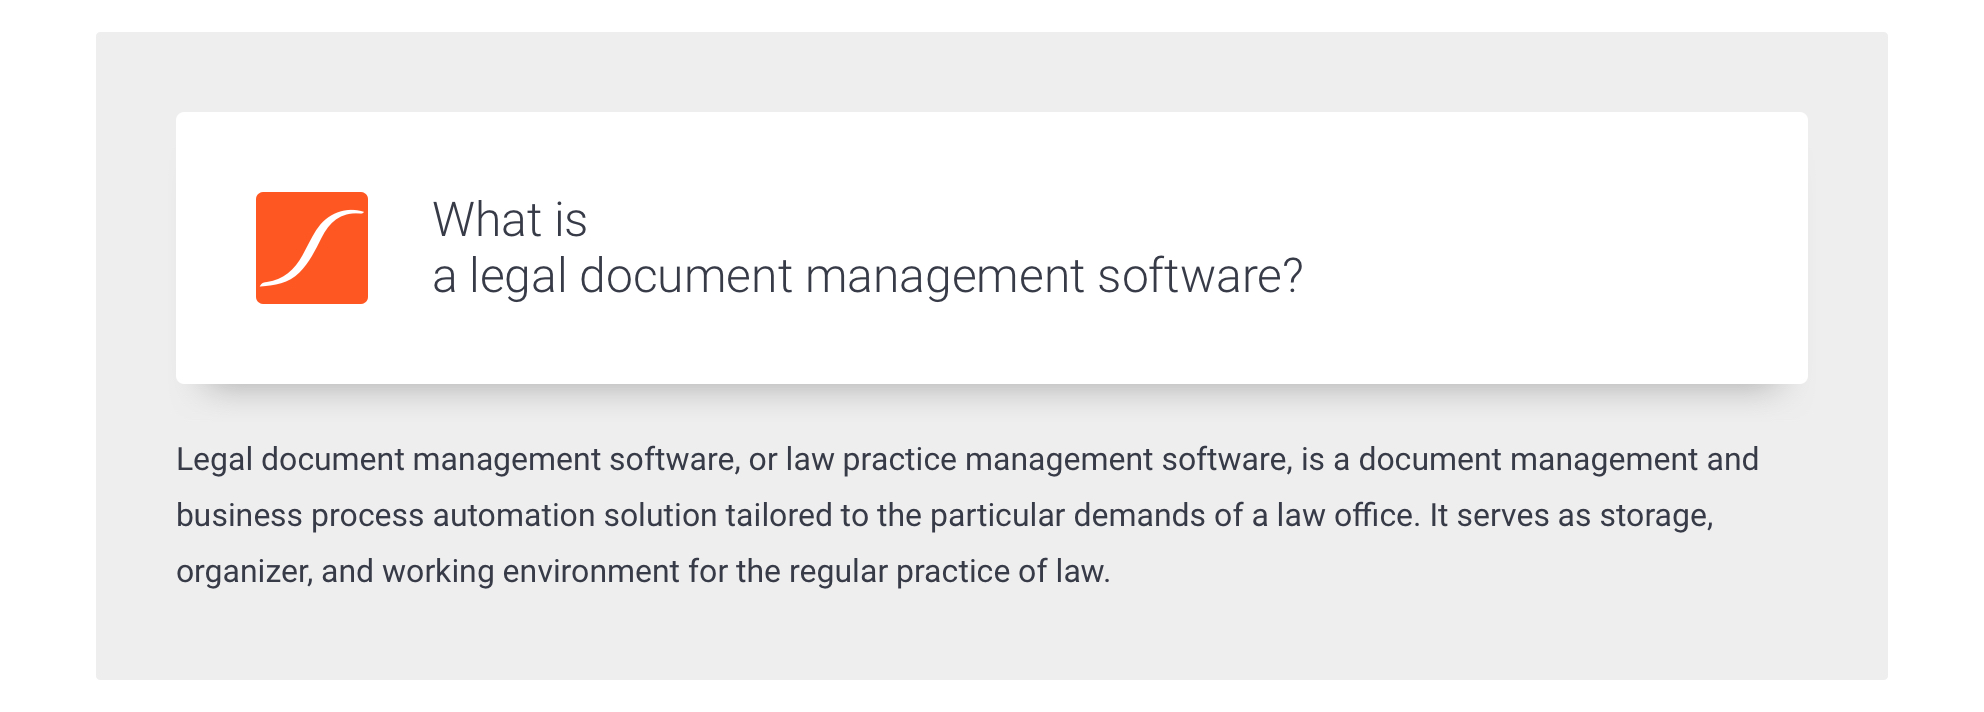 What is a legal document management system